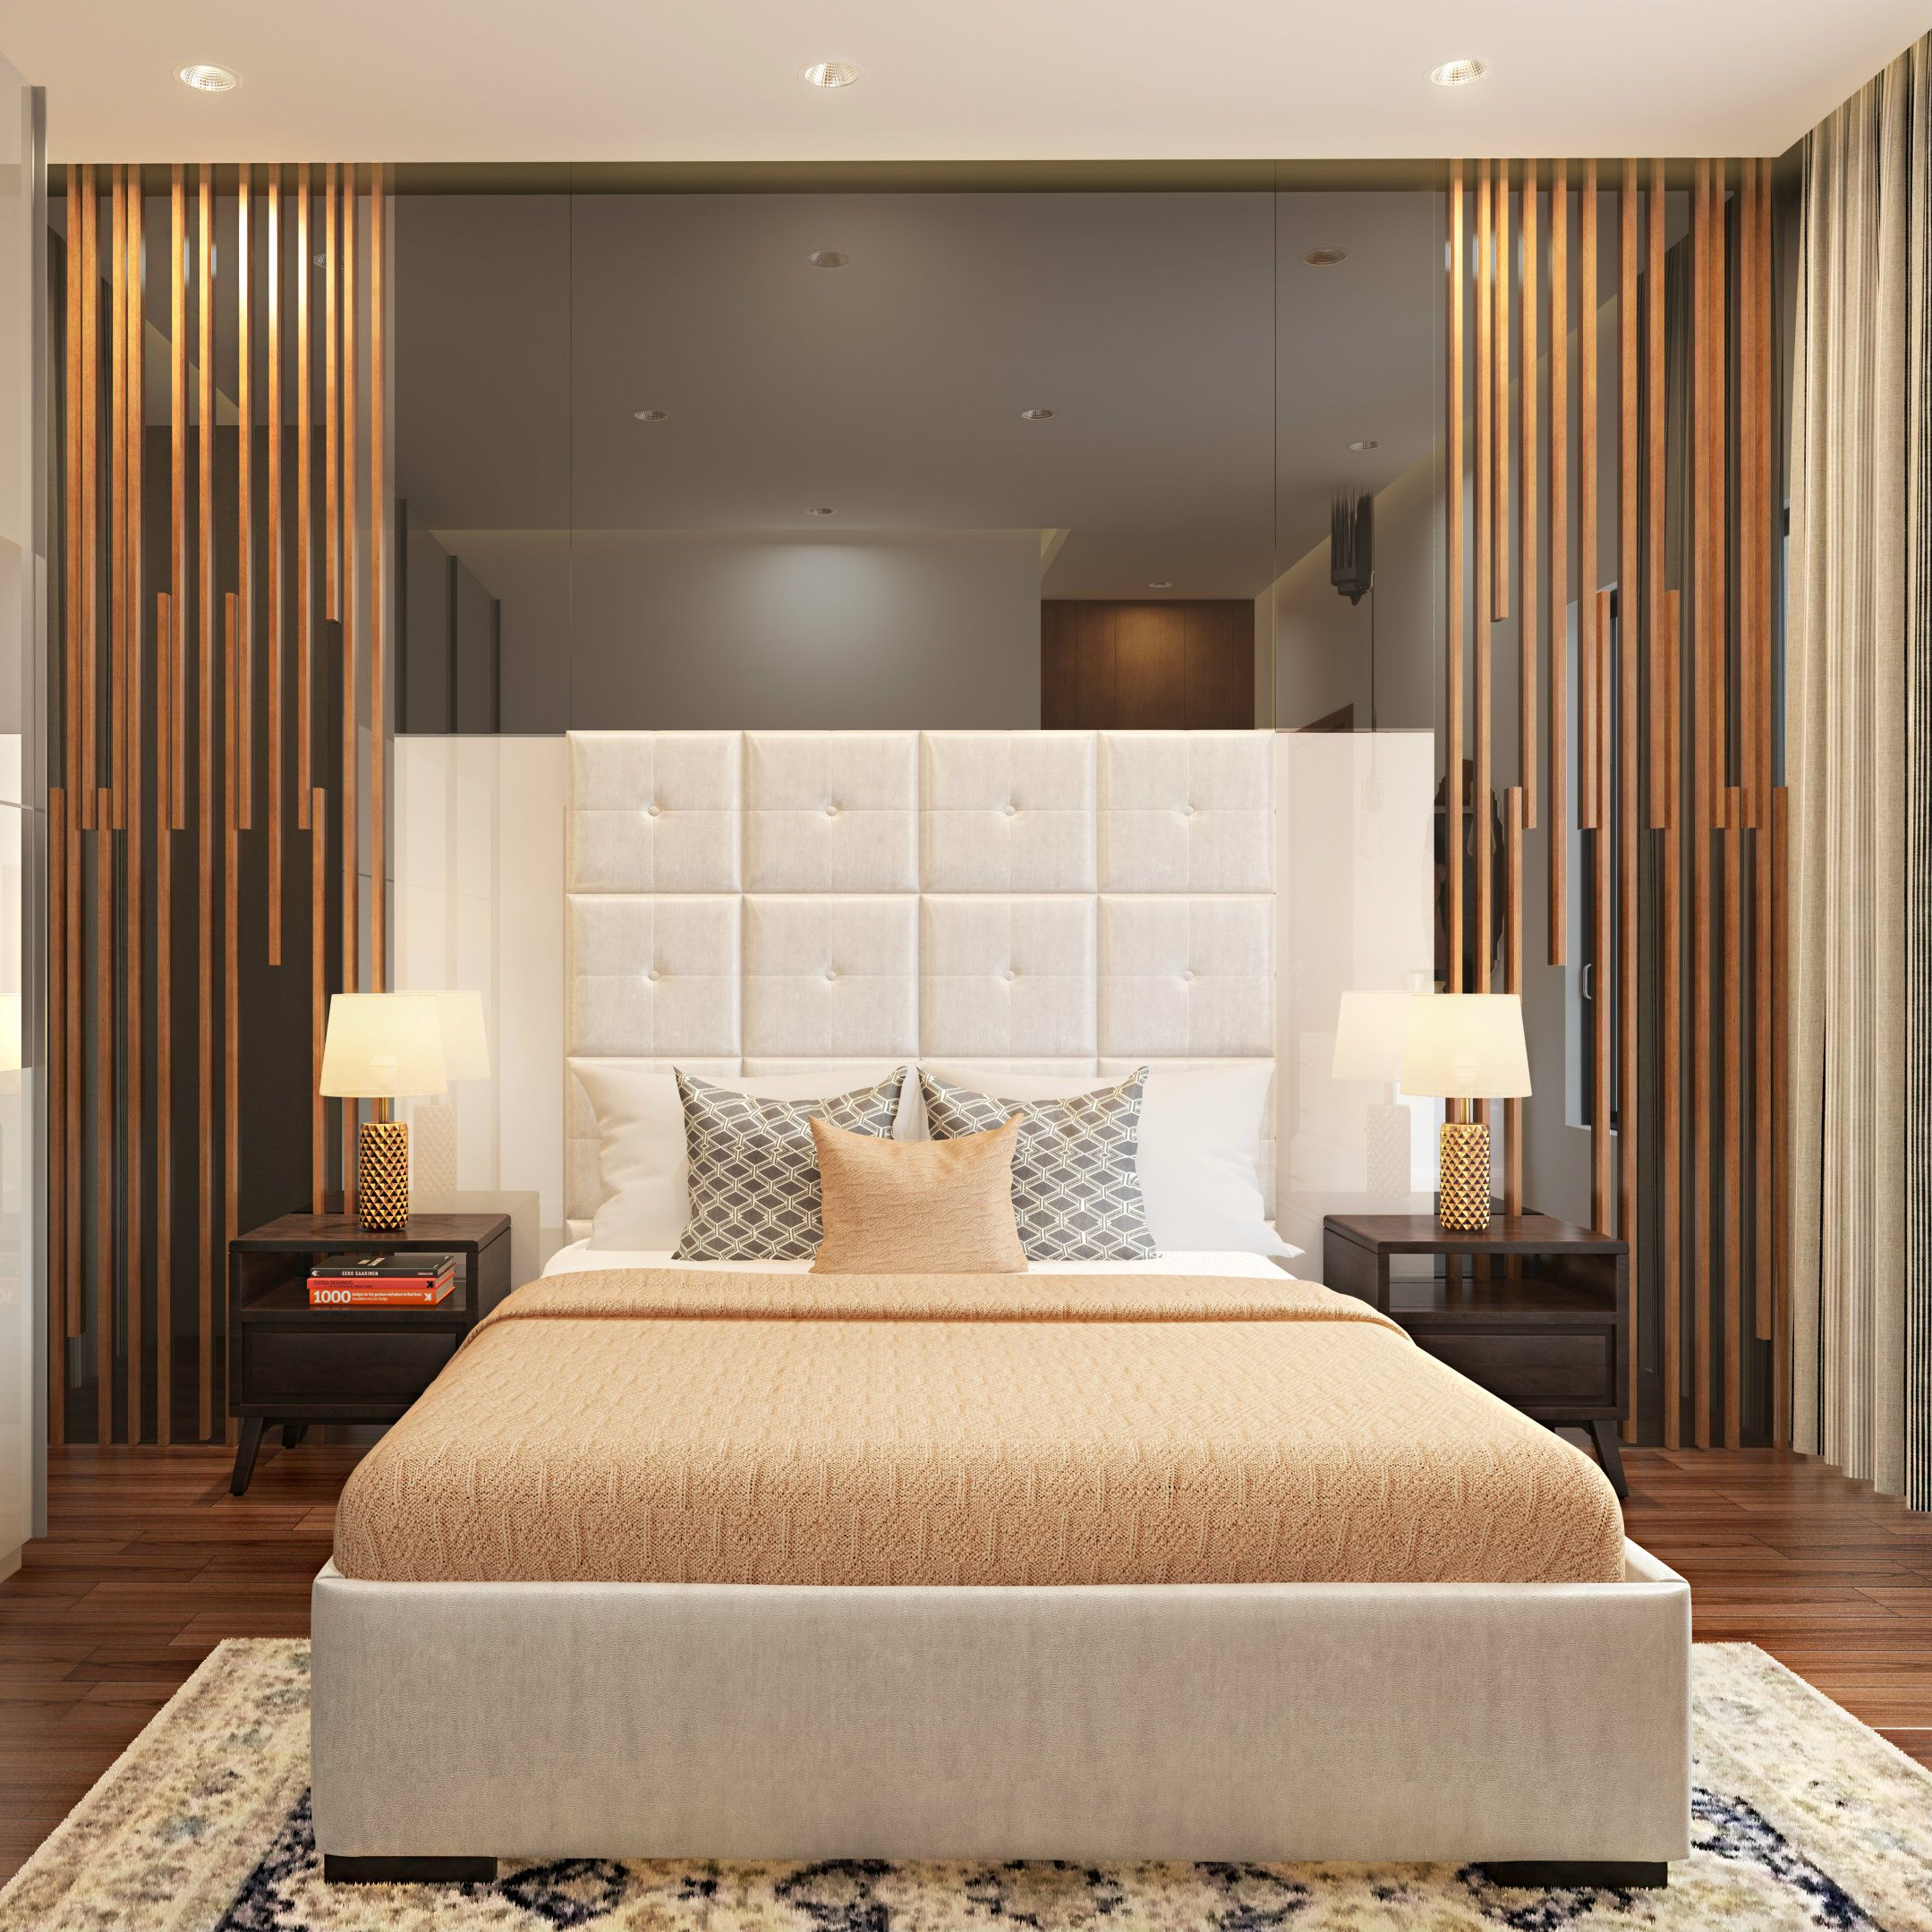 A Luxurious Bedroom Design Mirrored Accent Wall Plush Headboard